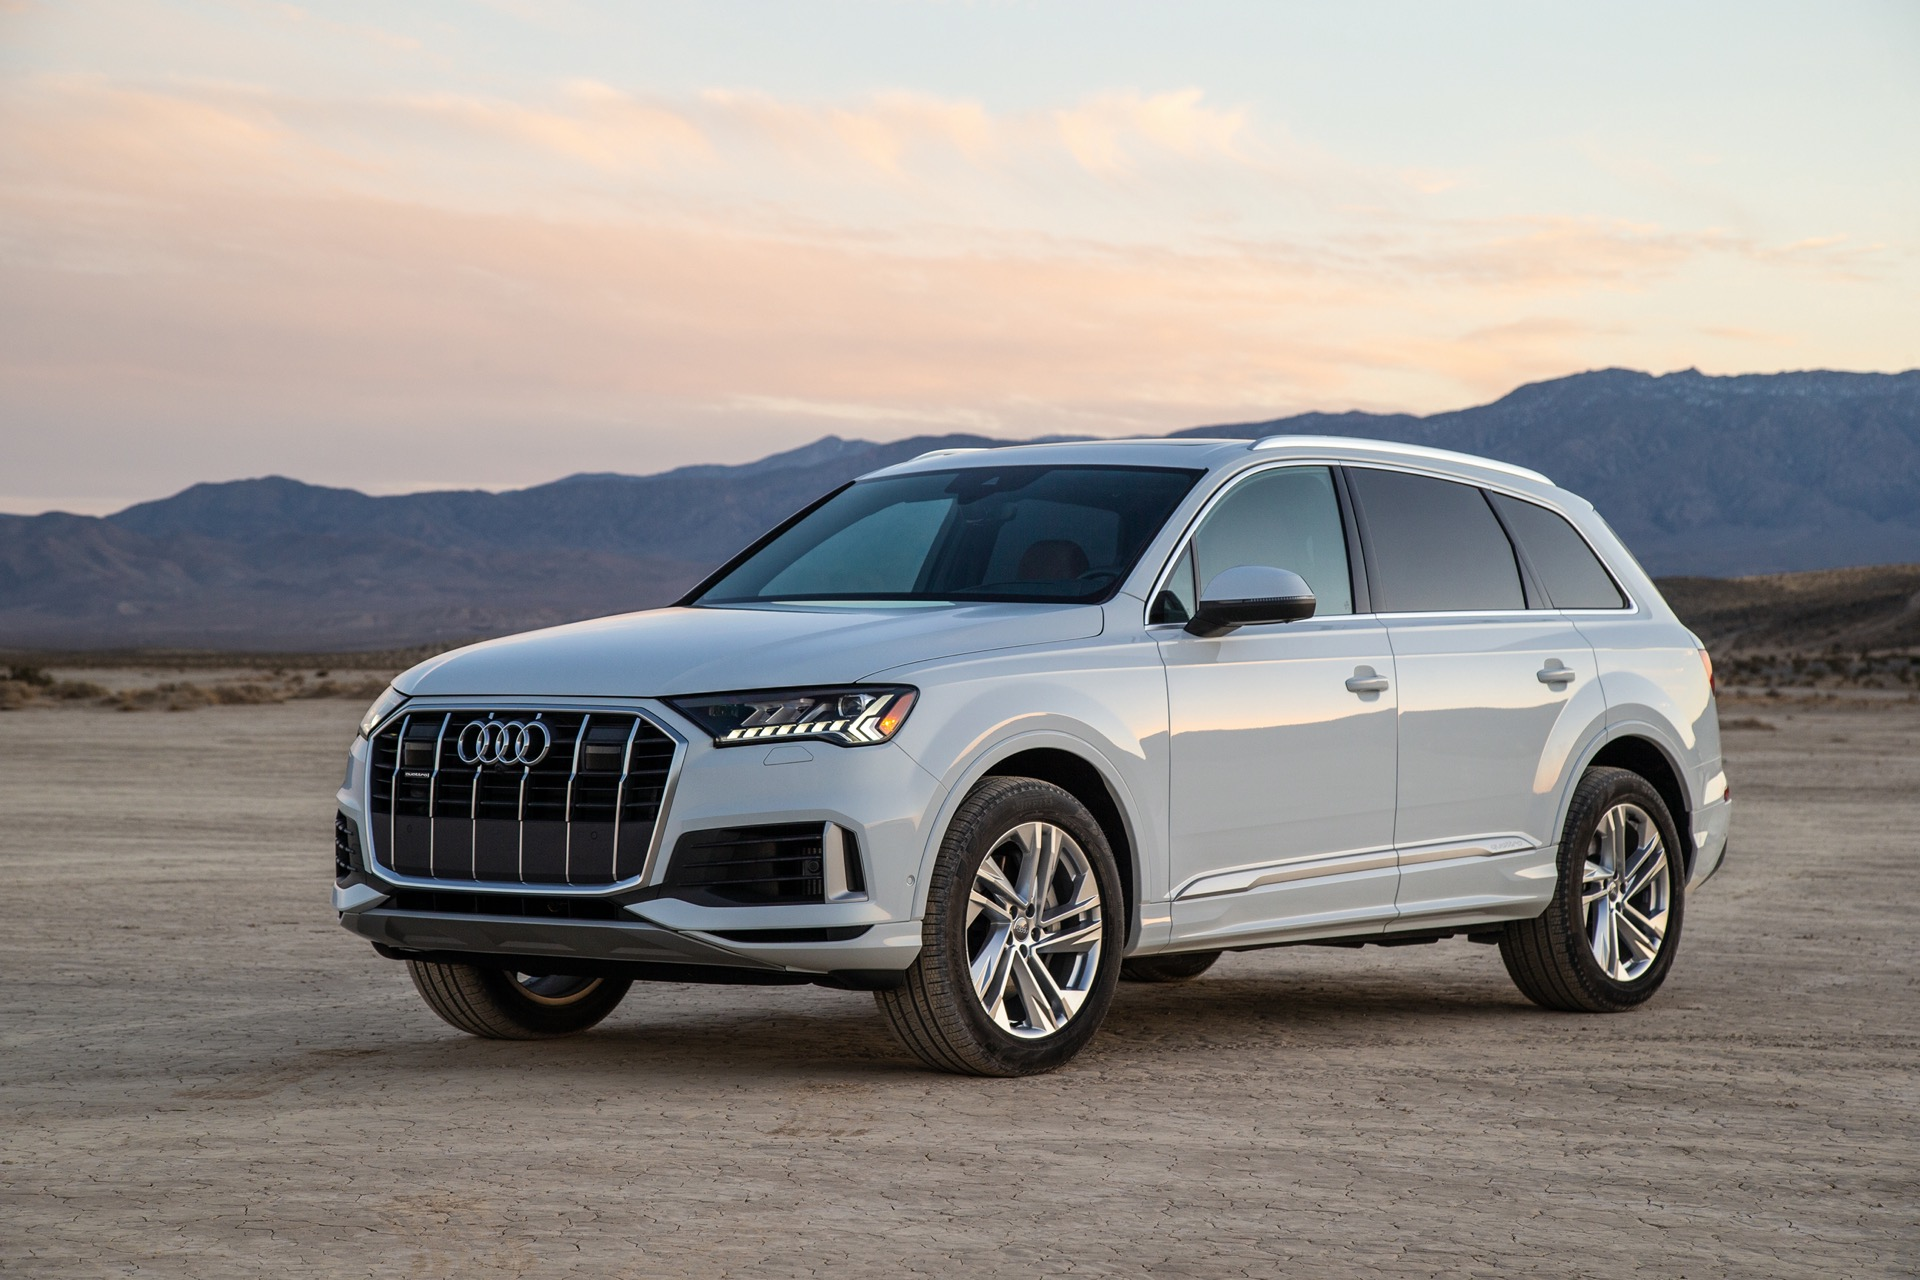 first drive: 2020 audi q7 goes long on tech, short on